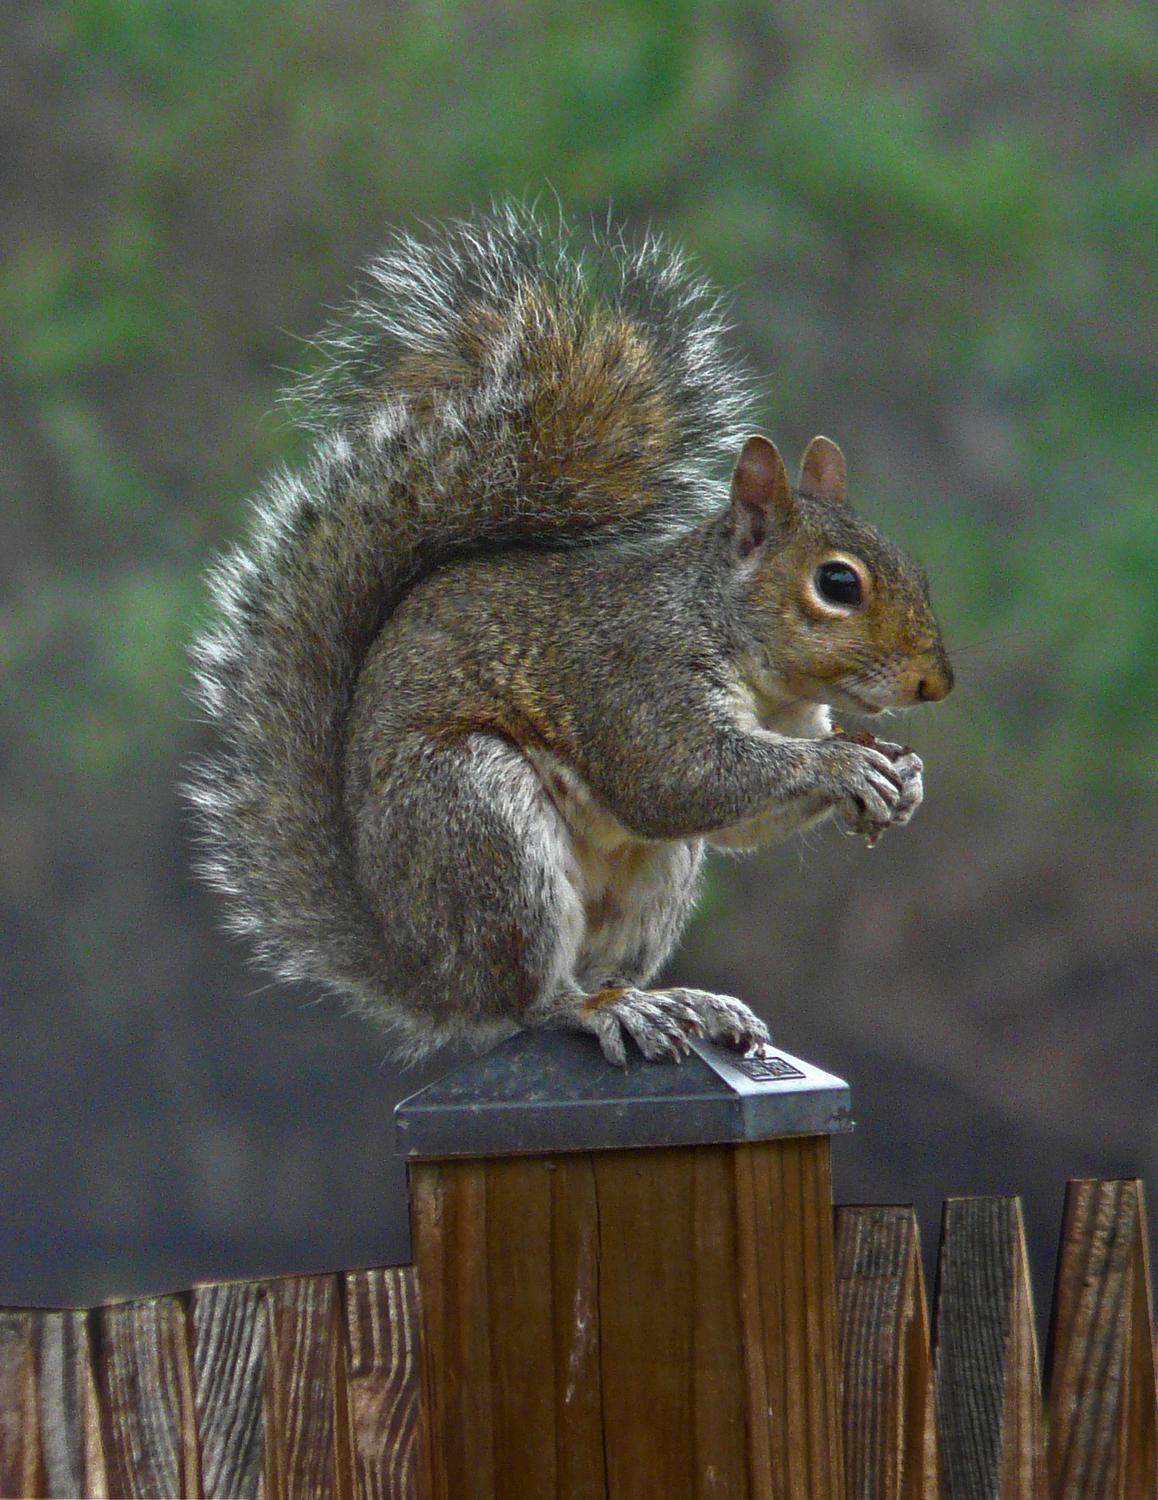 - Mr. Squirrel, post-processed in LightZone 3 - Panasonic DMC-FZ18 - Tony Karp, design, art, photography, techno-impressionist, techno-impressionism, aerial photography , drone , drones , dji , mavic pro , video , 3D printing - Books -